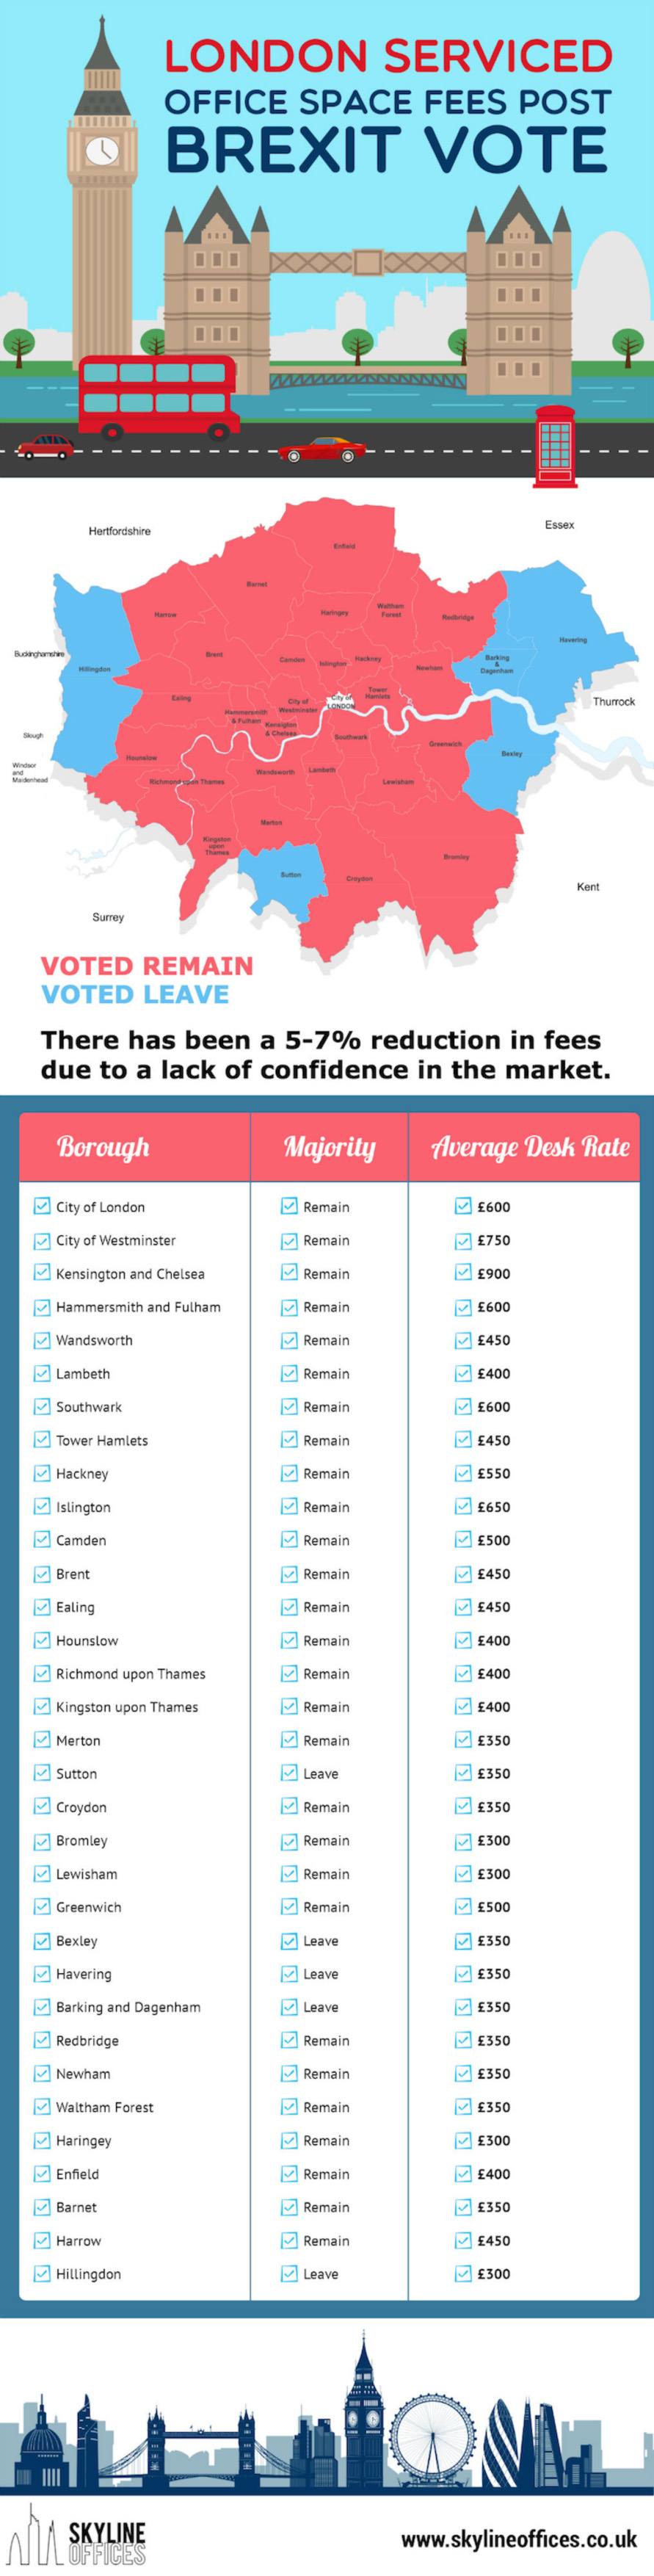 LONDON SERVICED OFFICE SPACE FEES POST BREXIT VOTE.jpg